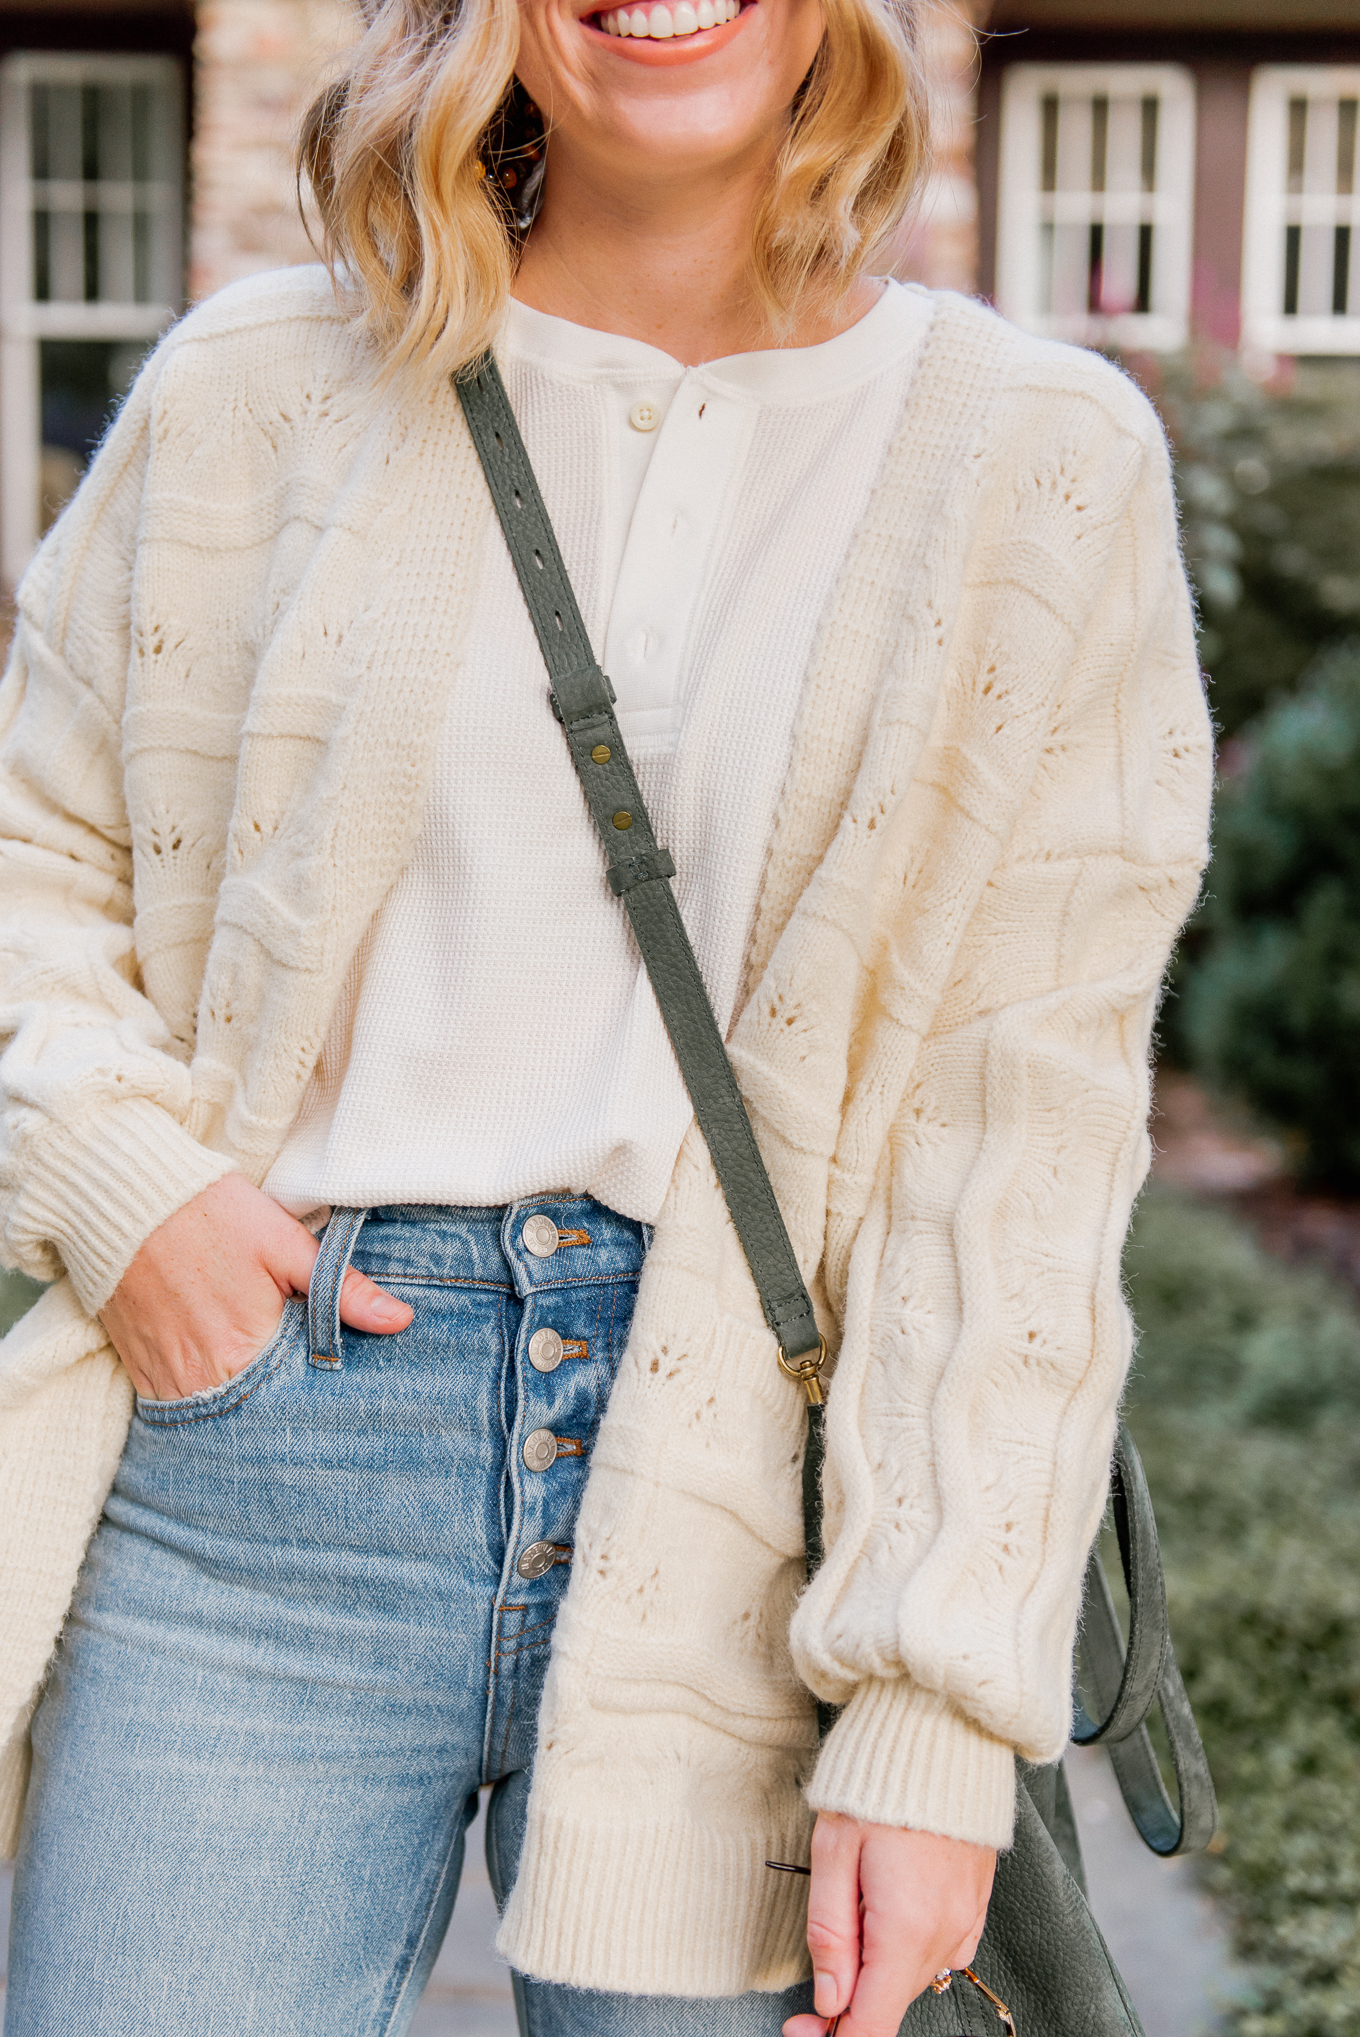 Six Cozy Fall Cardigans | Casual Fall Outfit featuring Ivory Knit Cardigan | Louella Reese